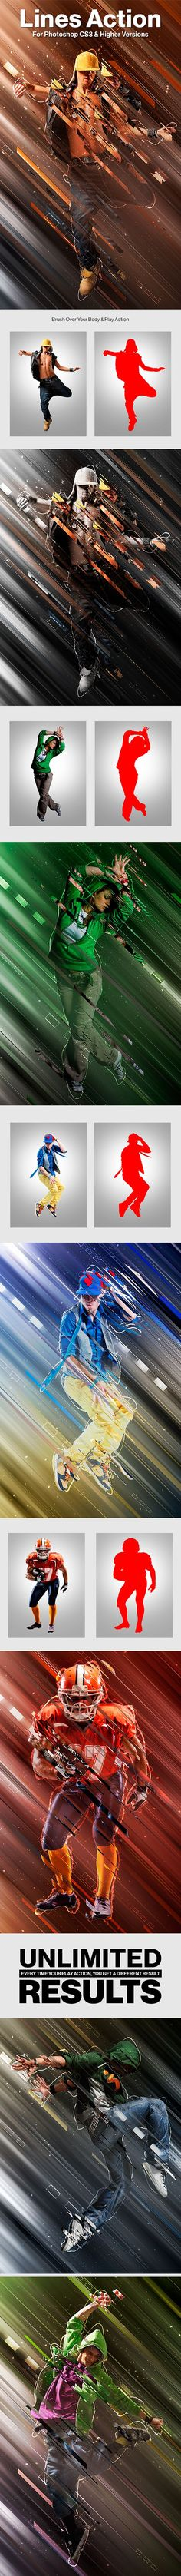 Lines Photoshop Action #star #cloud • Download ➝ https://graphicriver.net/item/lines-photoshop-action/18300619?ref=pxcr